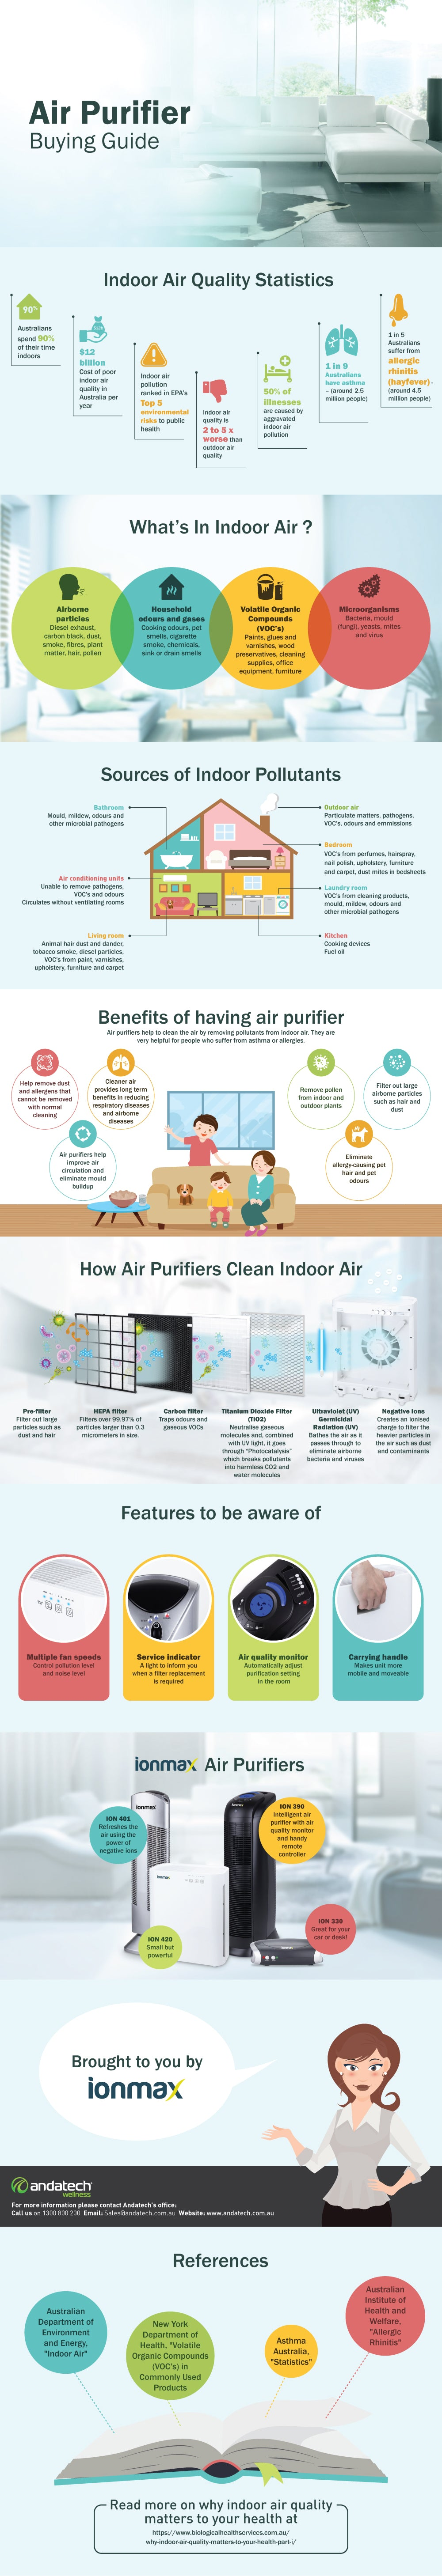 indoor air quality statistics infographic